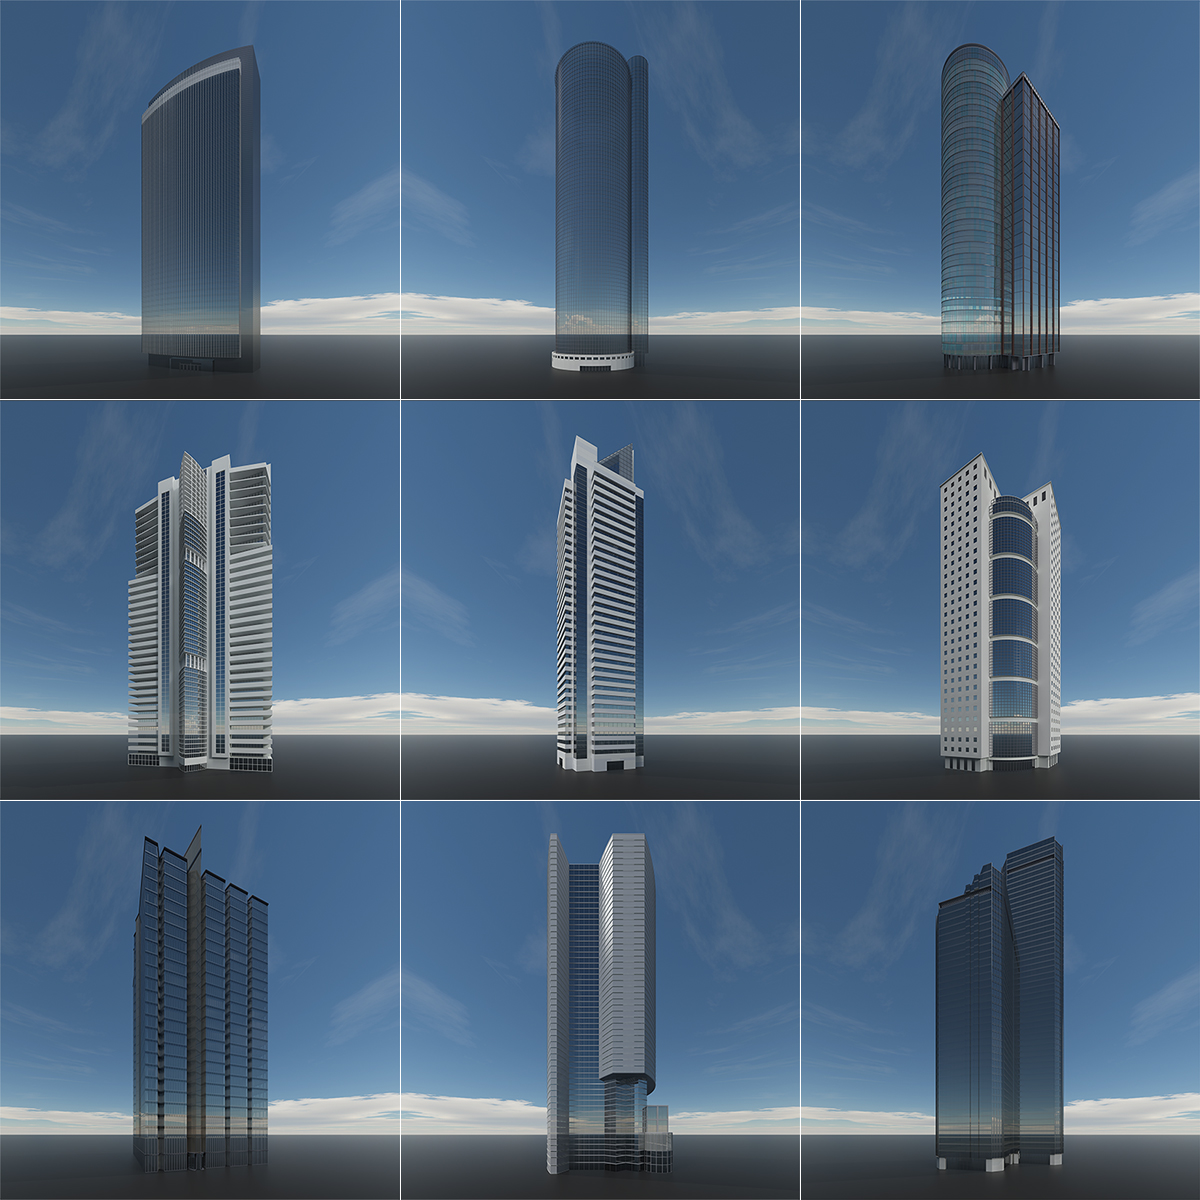 This was HomoSapiens SkyScrapers 000 1 - 2019 - This was HomoSapiens. SkyScrapers